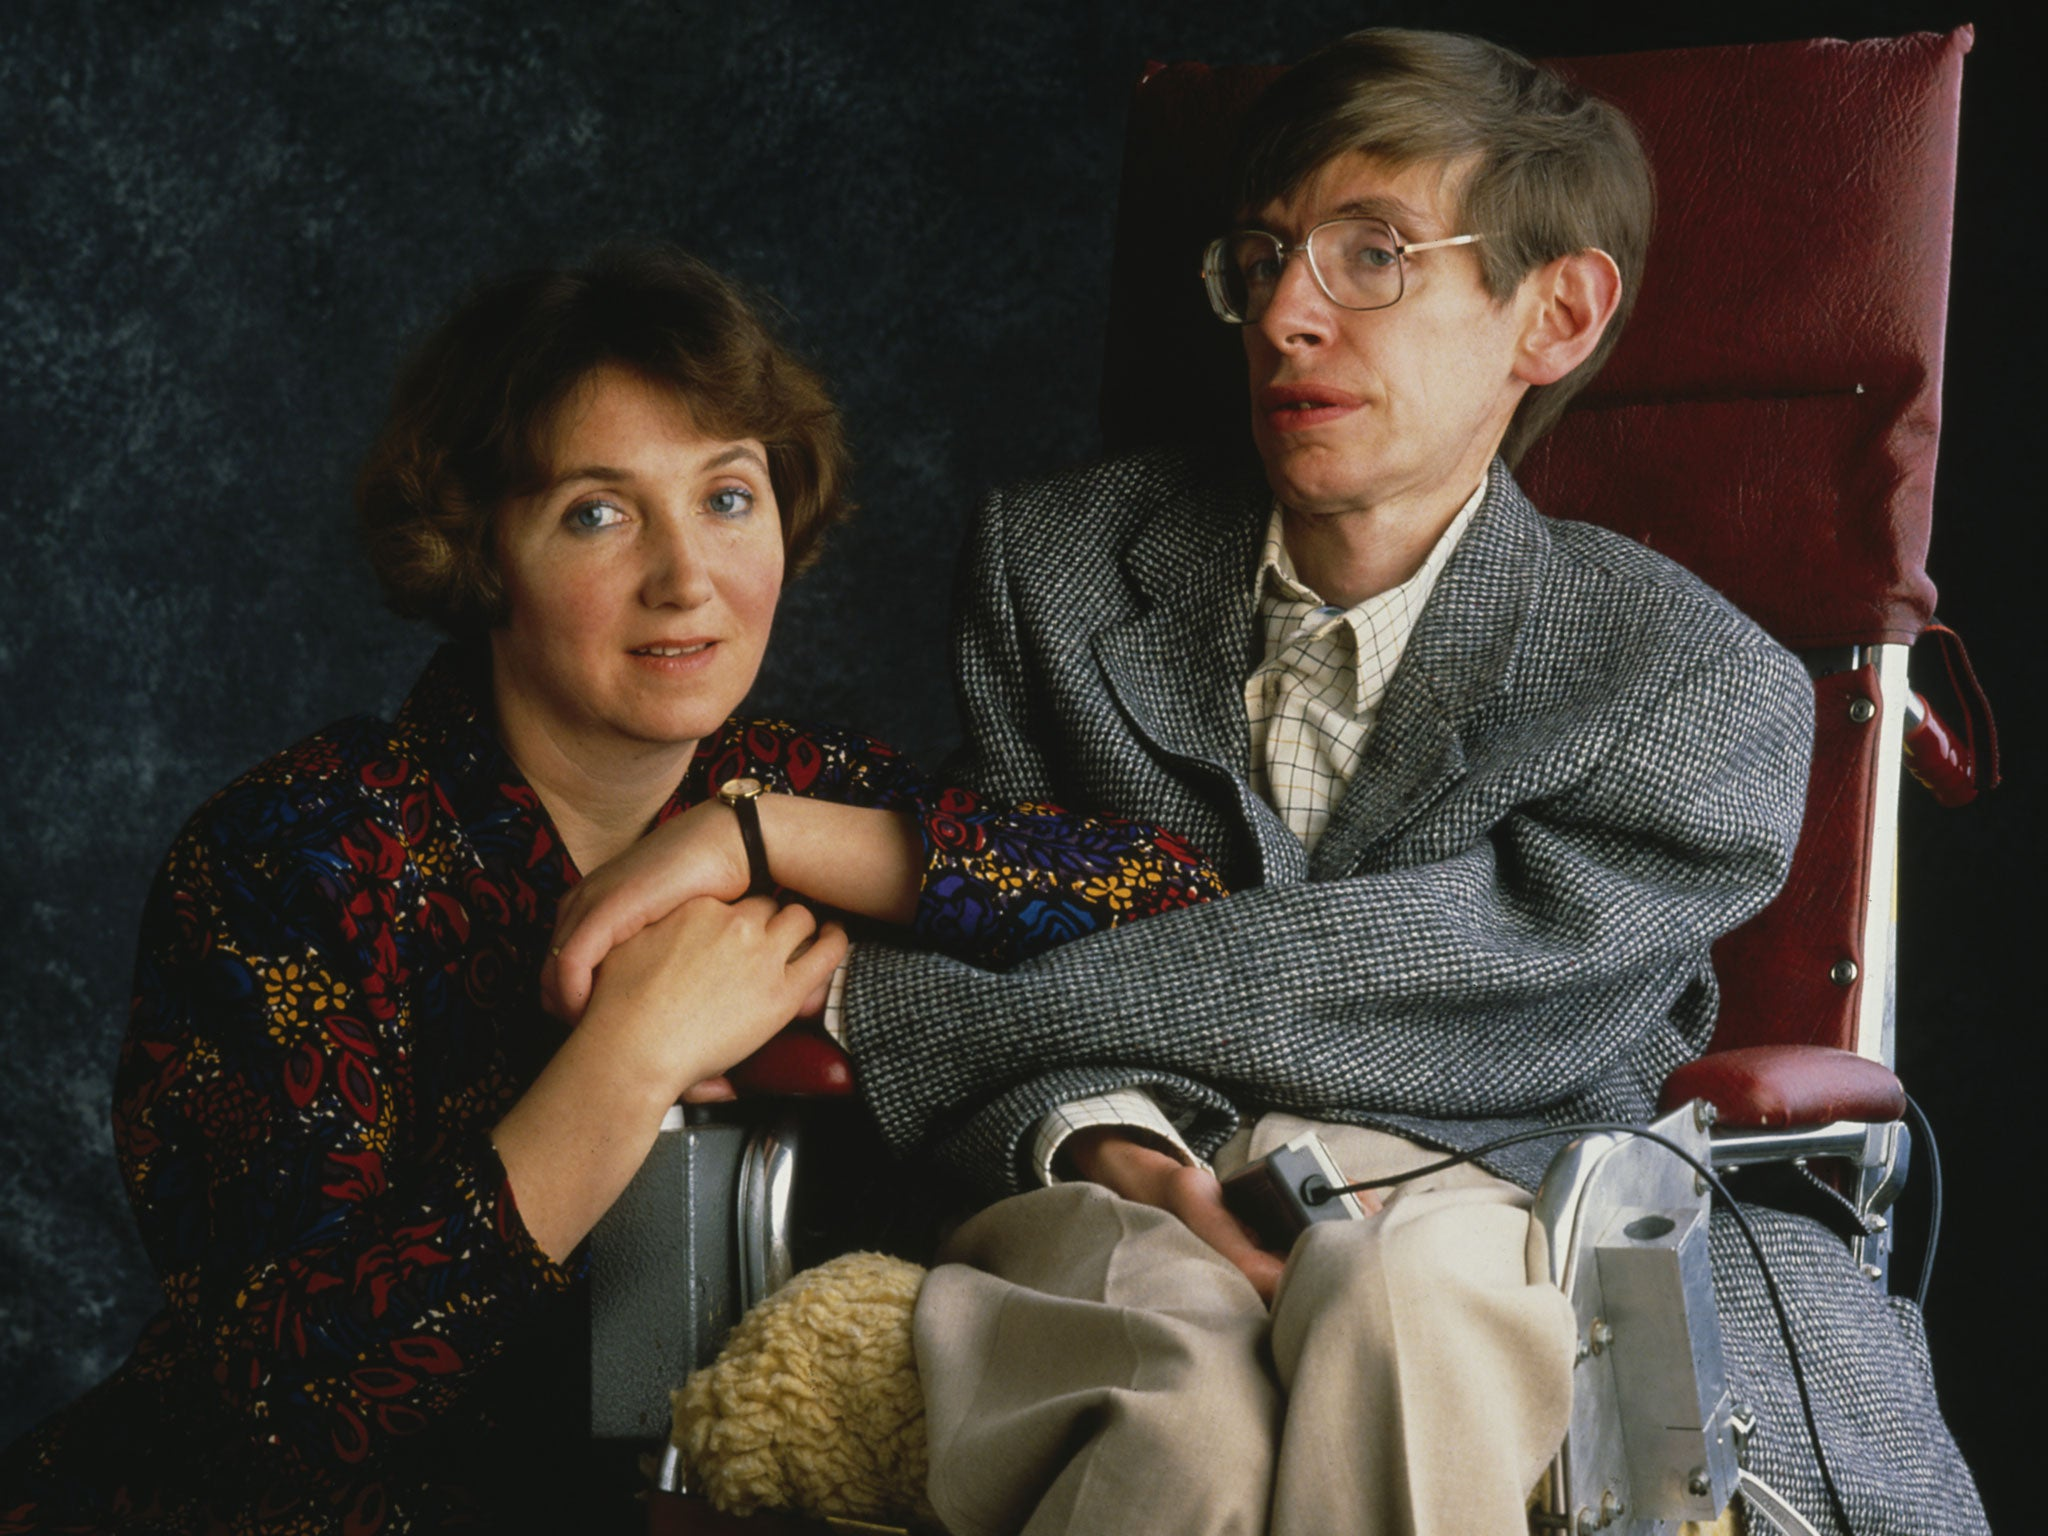 jane hawking says living with stephen made her suicidal